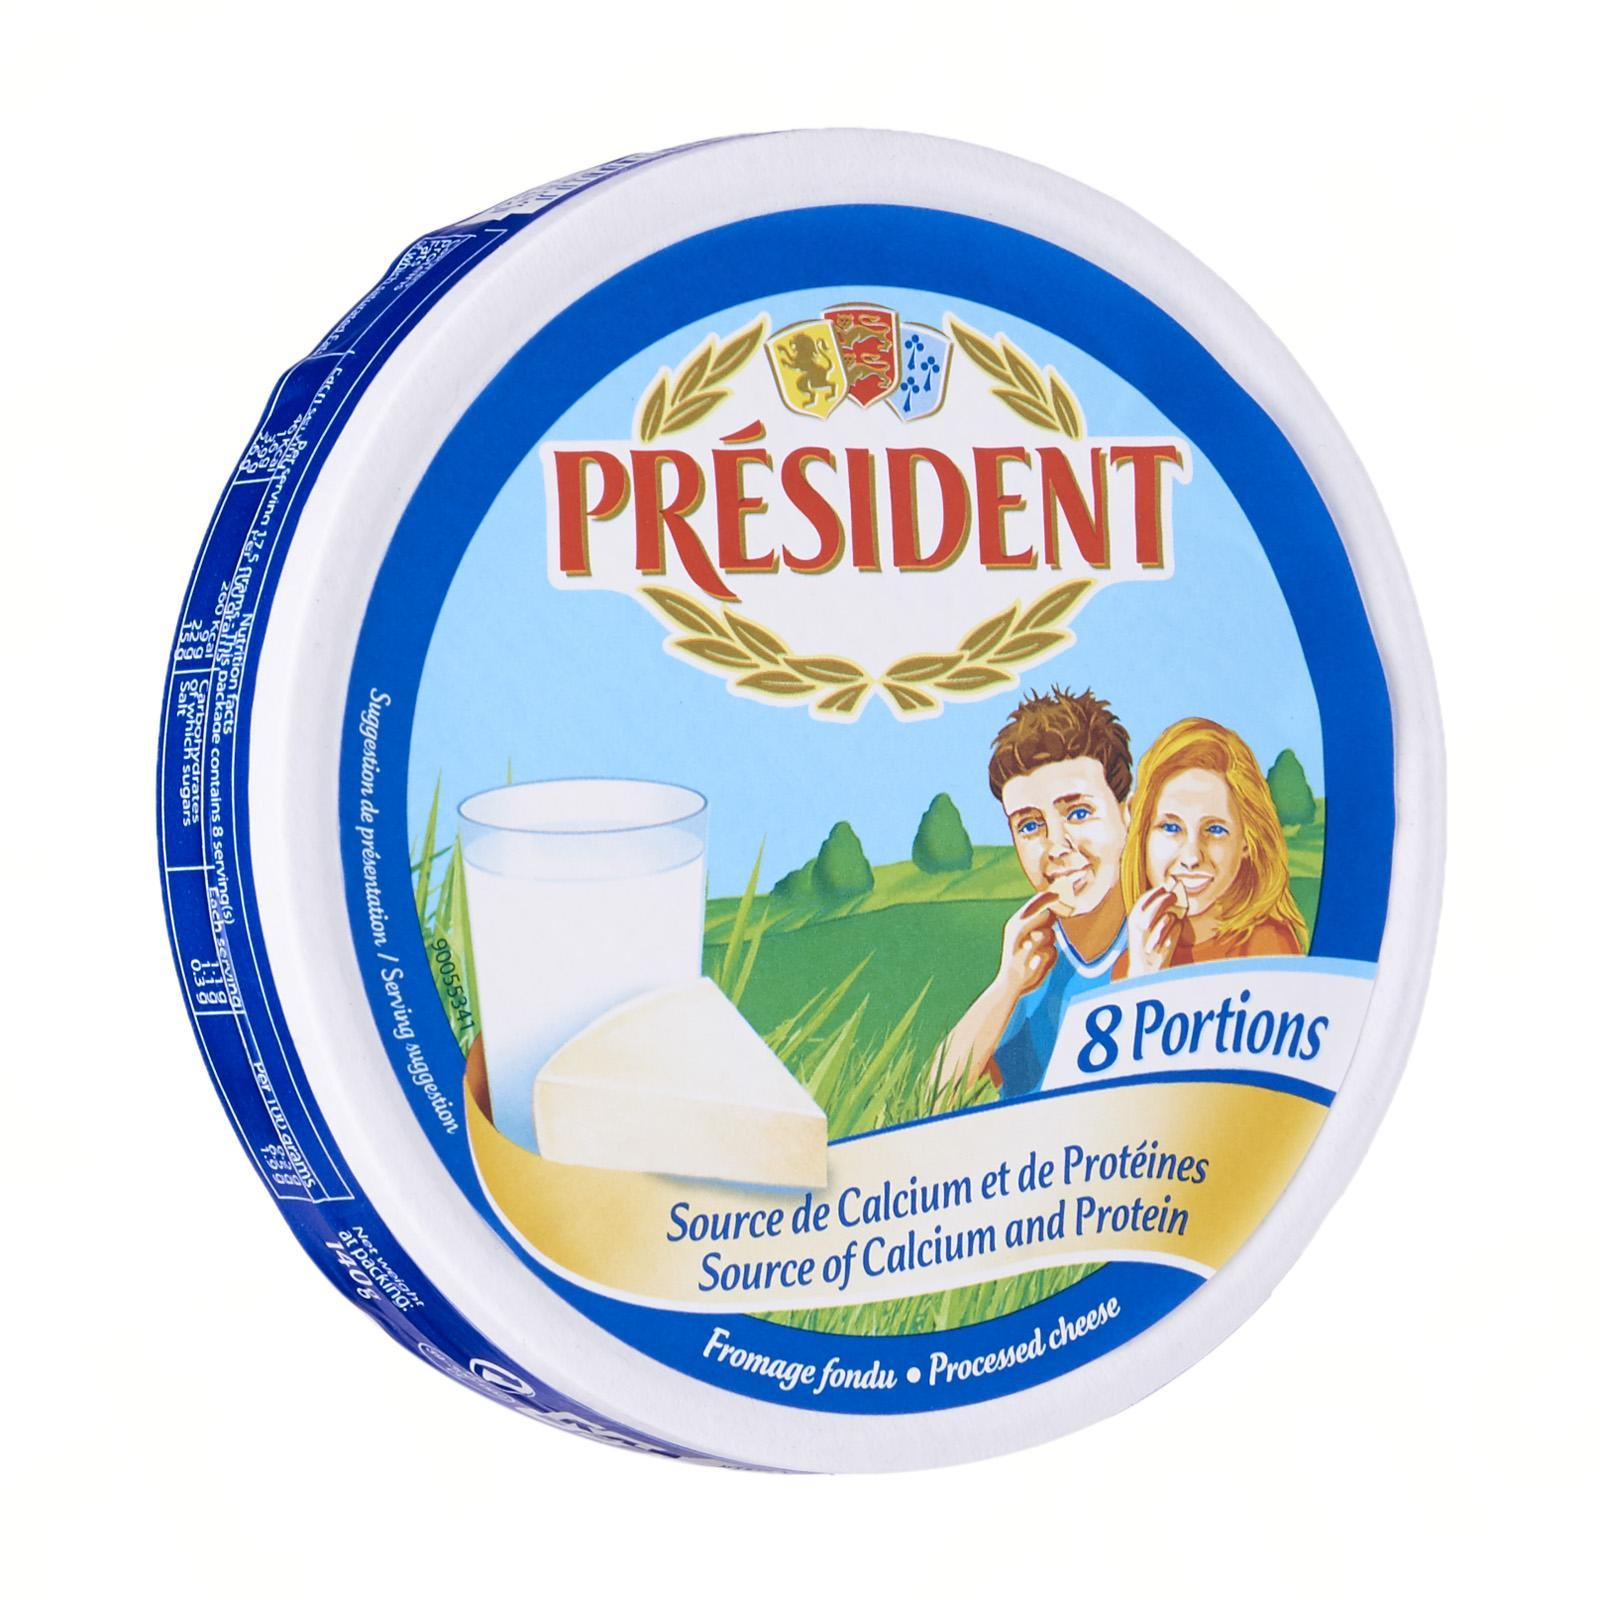 PRESIDENT Cheese Spread 8 portion Cheese Spread